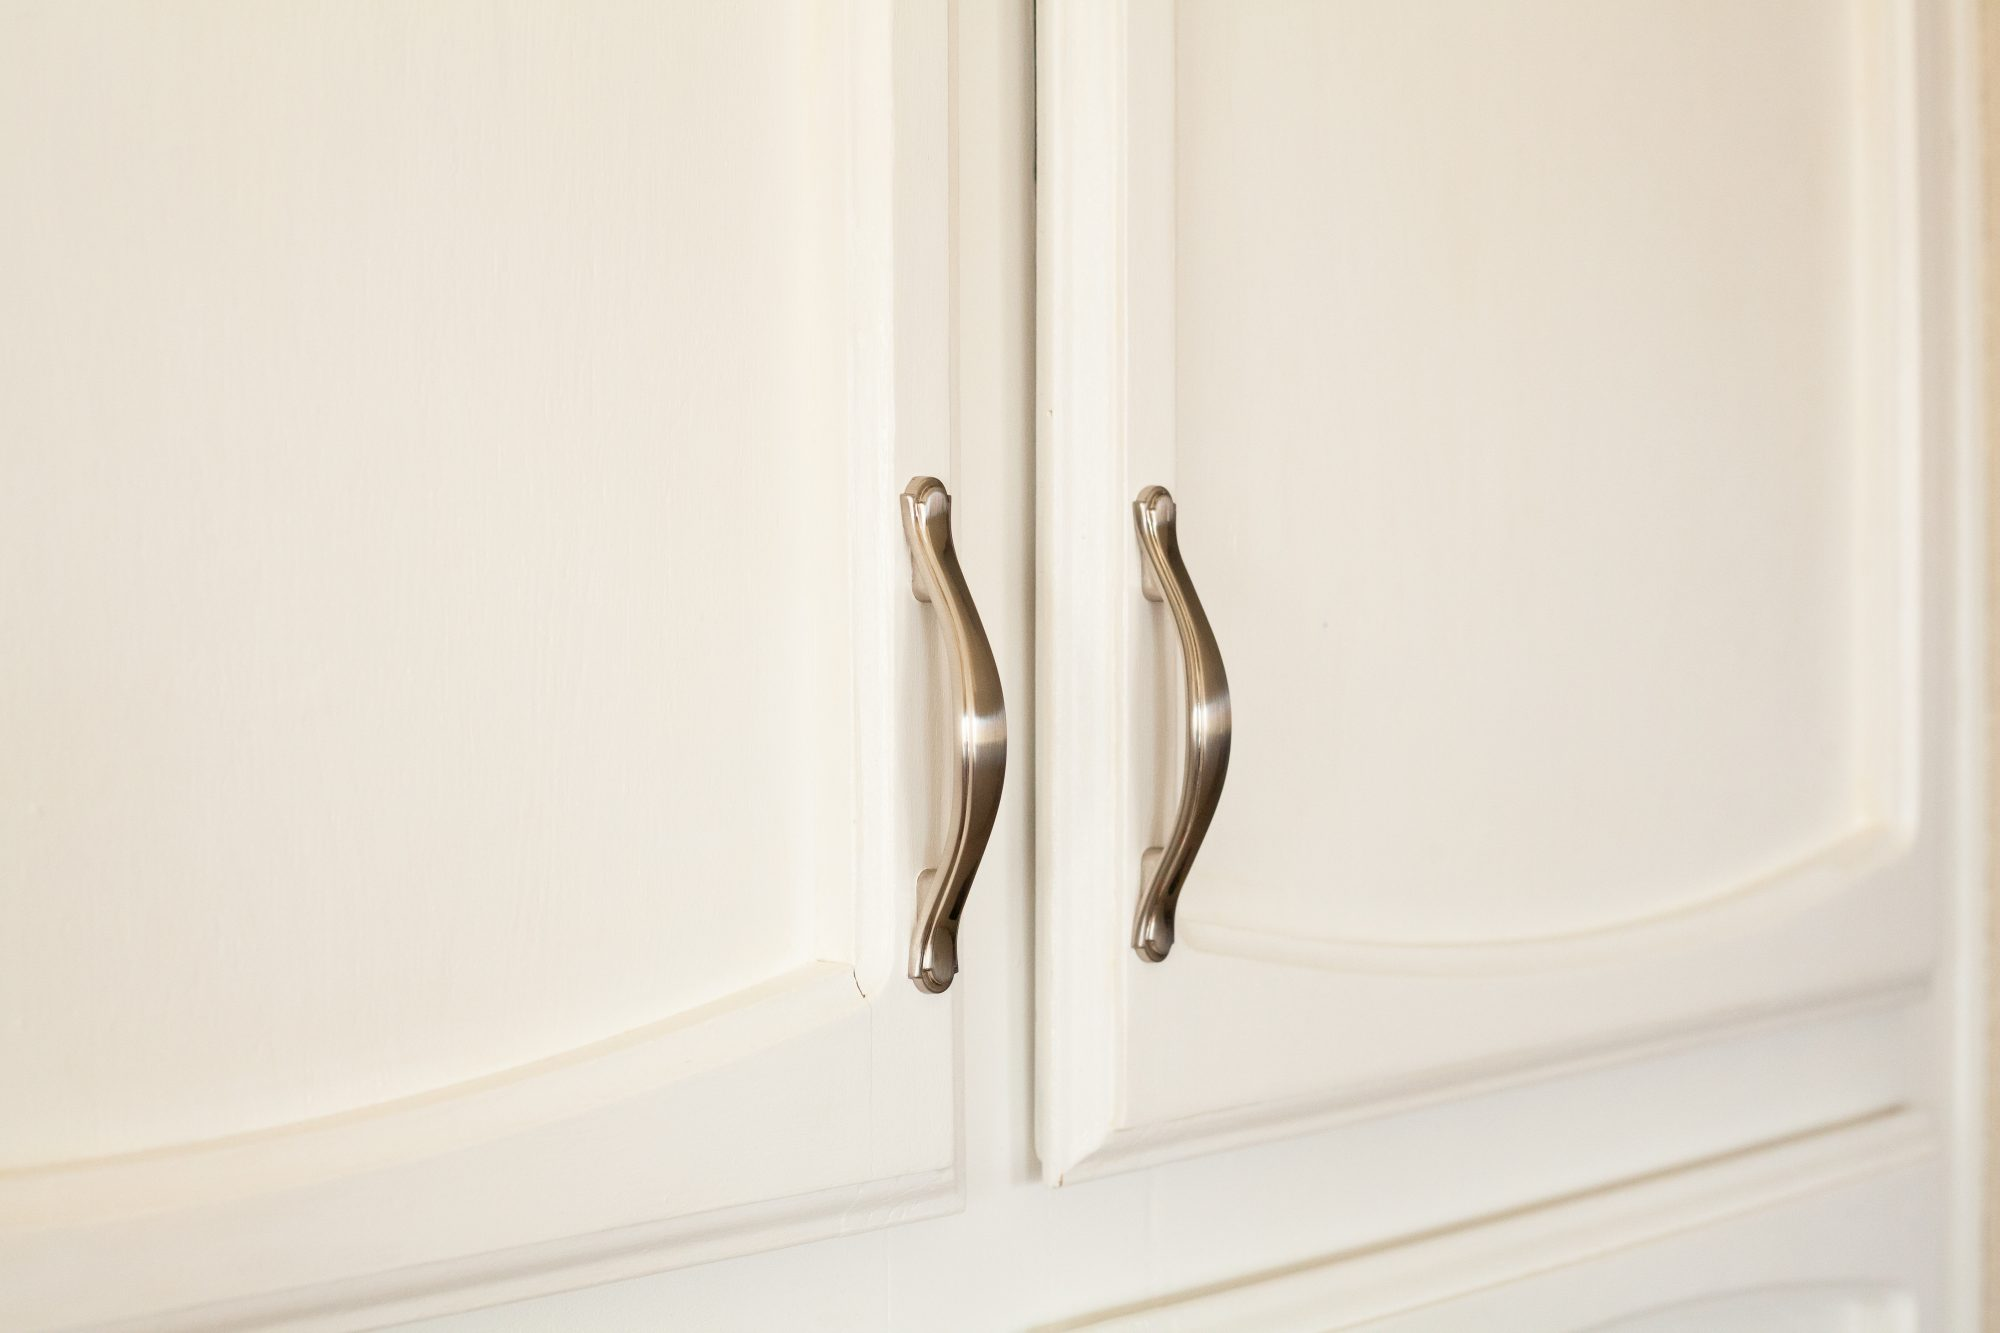 AmazonBasics Traditional Craftsman Cabinet Handles installed on newly painted cabinet doors